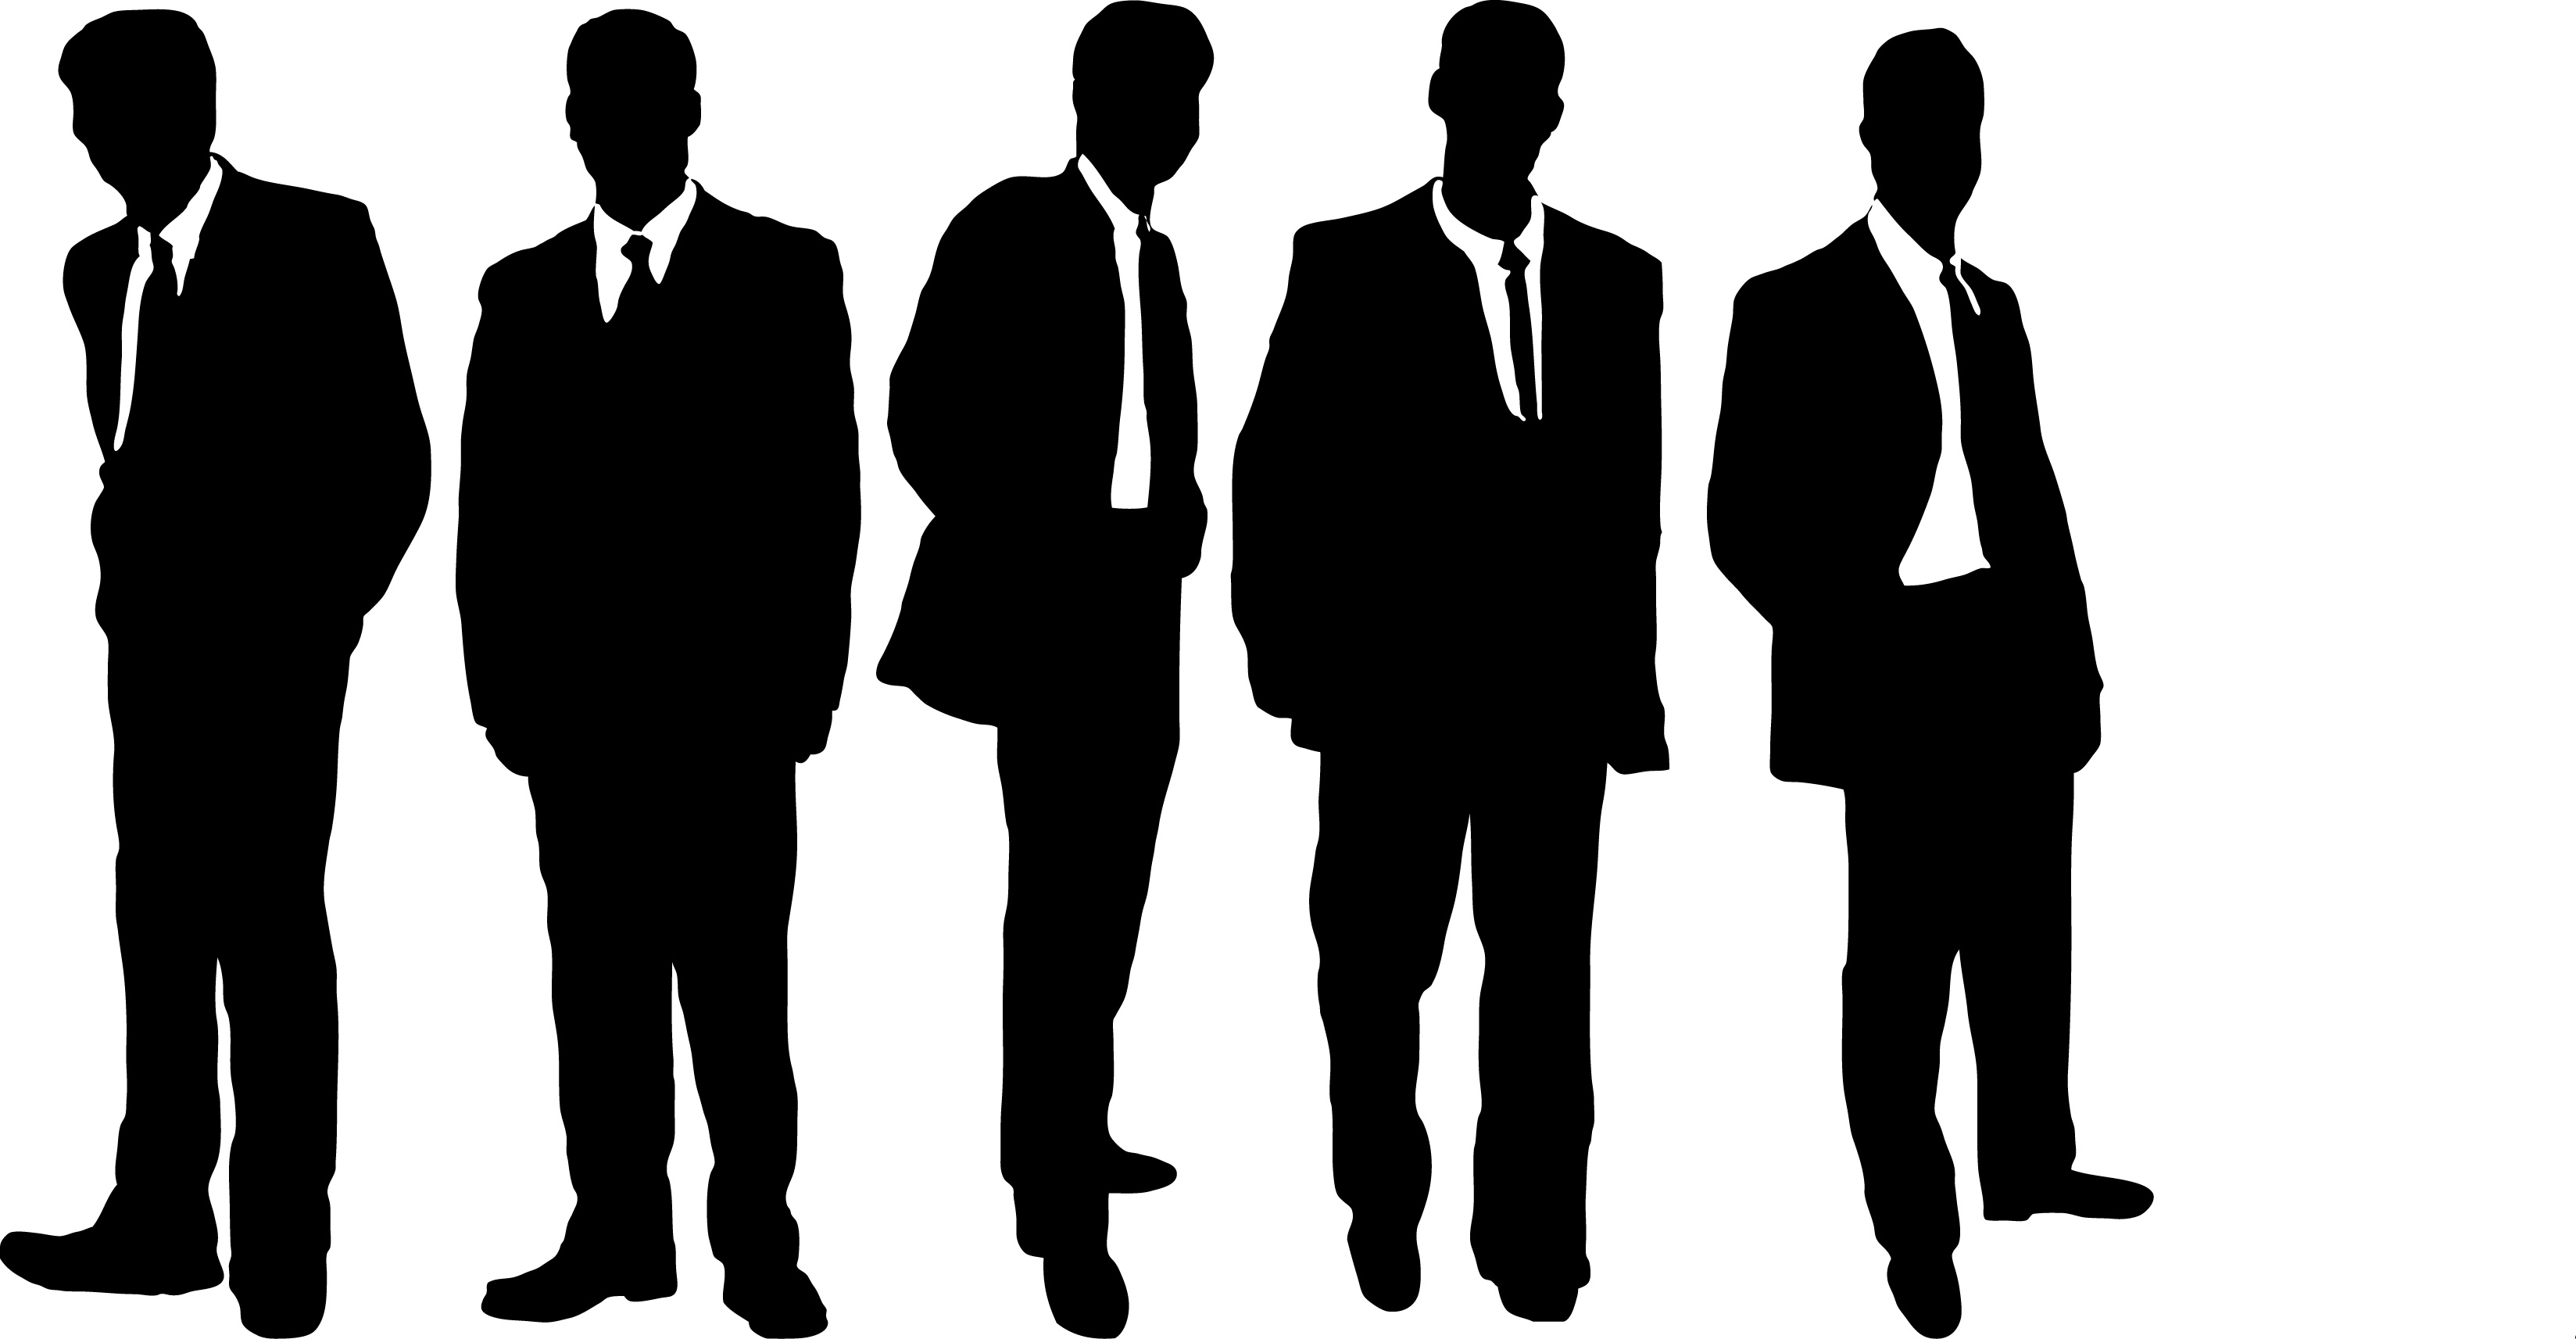 group silhouette clip art at getdrawings com free for personal use rh getdrawings com free business clipart pictures free business clipart gallery